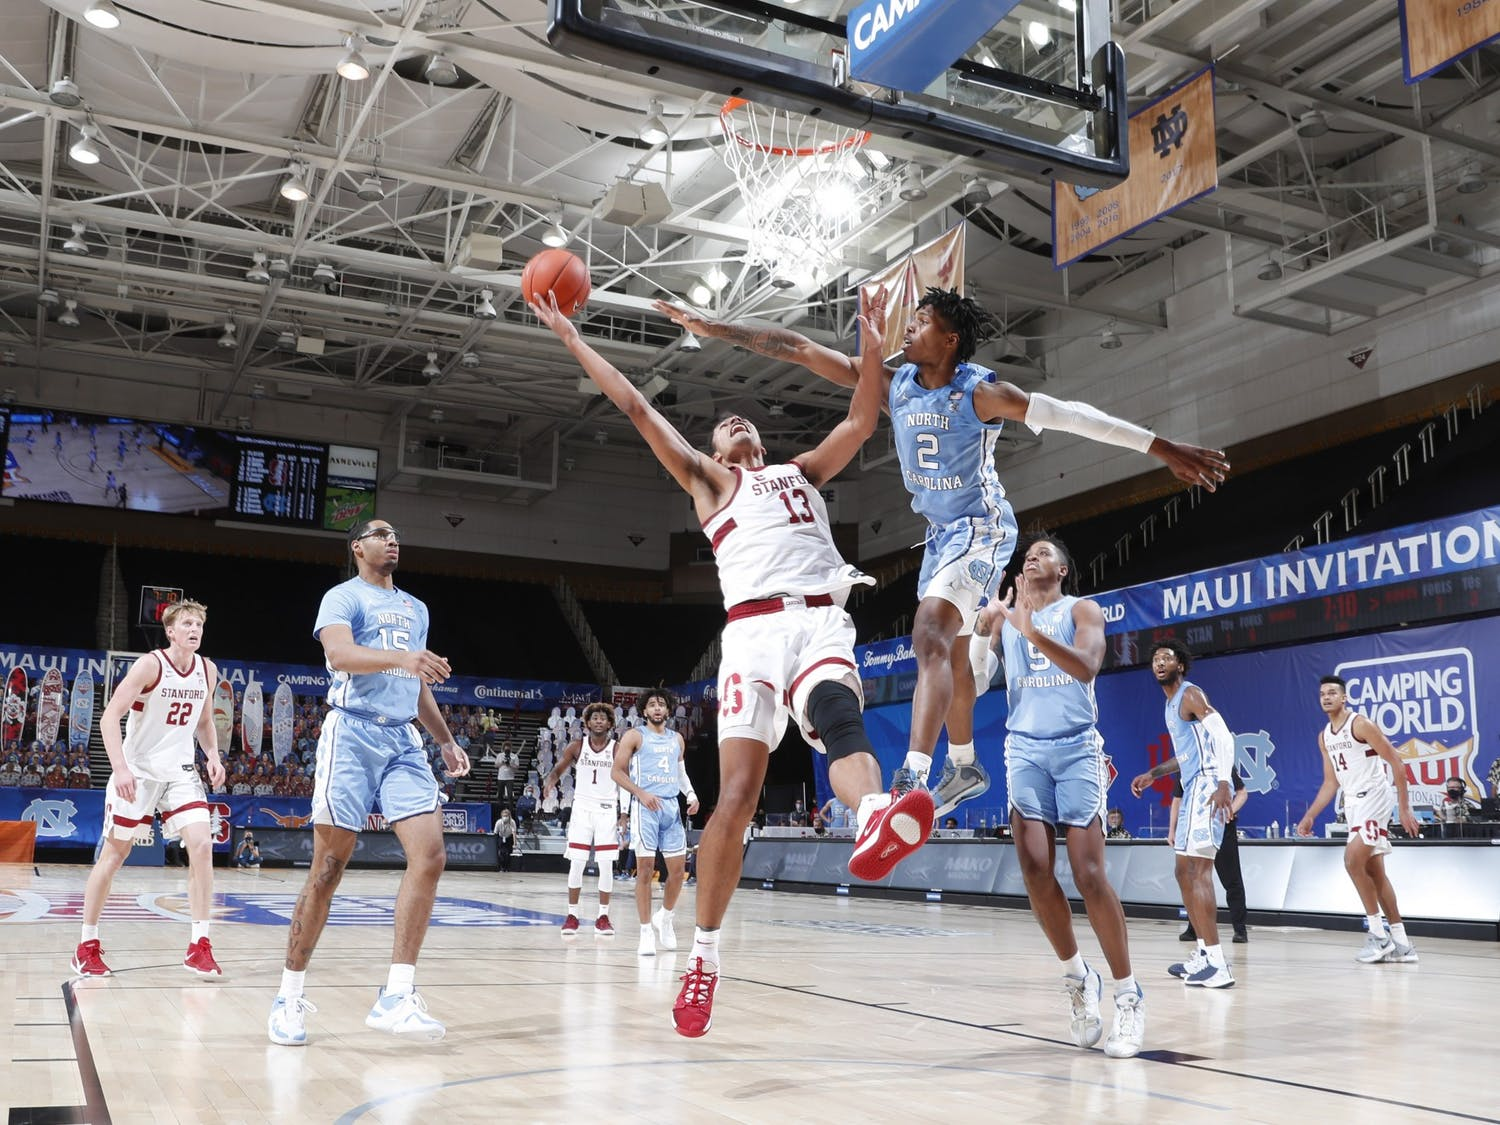 UNC first year guard Caleb Love (2) attempts to block a basket during a game against Stanford during the Maui Invitational Tournament in Asheville, N.C. on Tuesday, Dec. 1, 2020. UNC beat Stanford 67-63. Photo courtesy of Brian Spurlock/Camping World Maui Invitational.